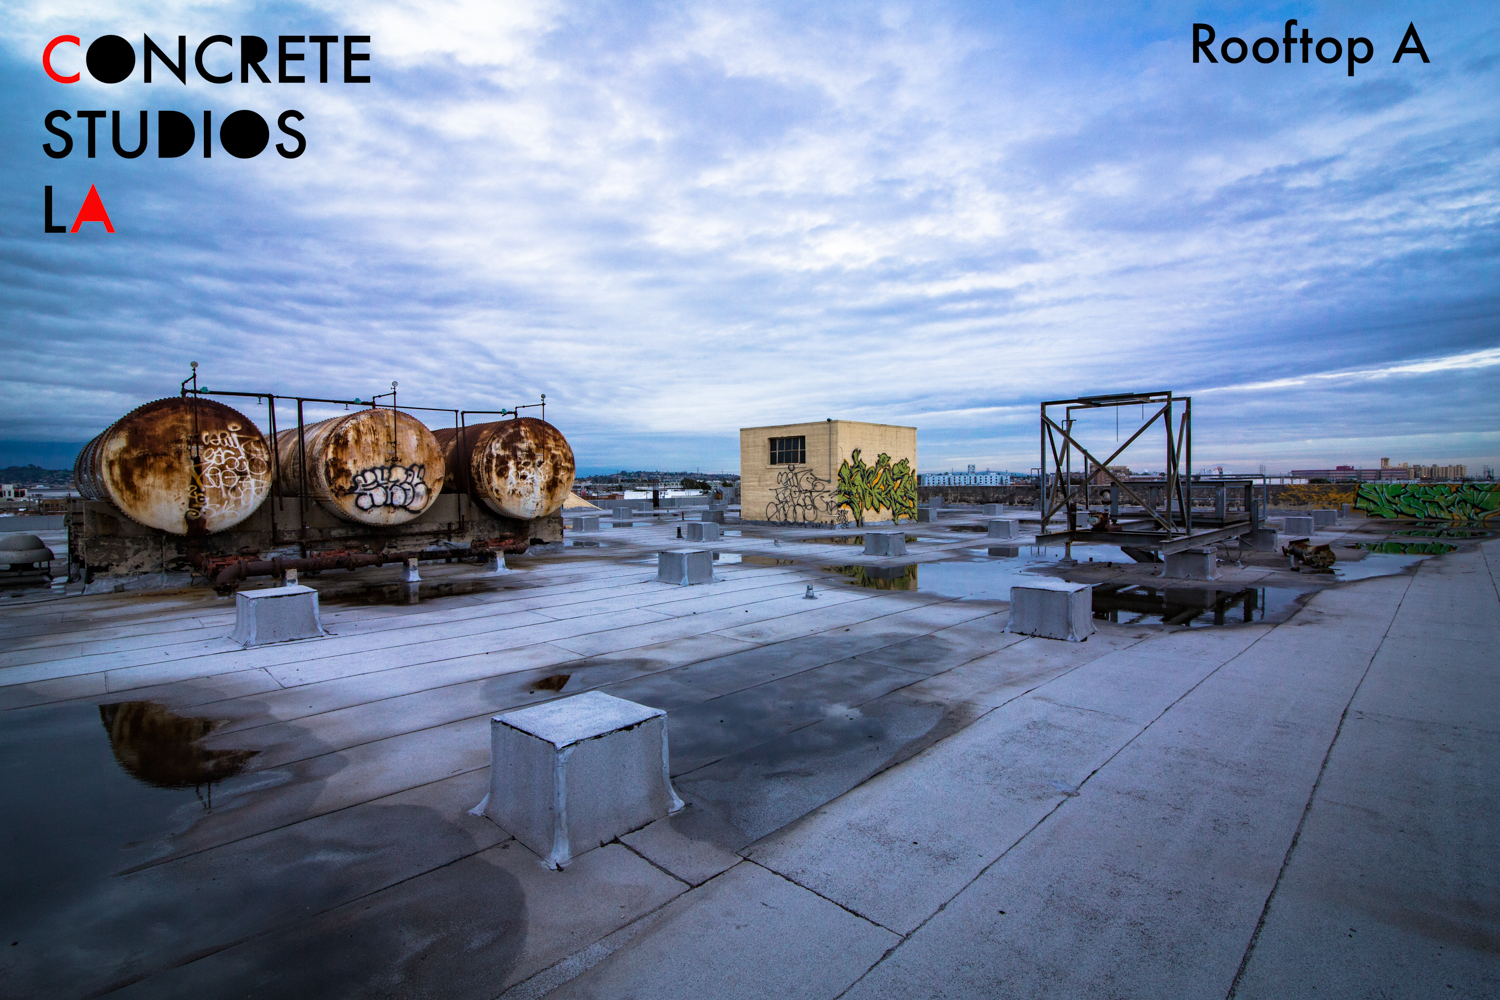 Concrete Studios LA_The Rooftop_.jpg